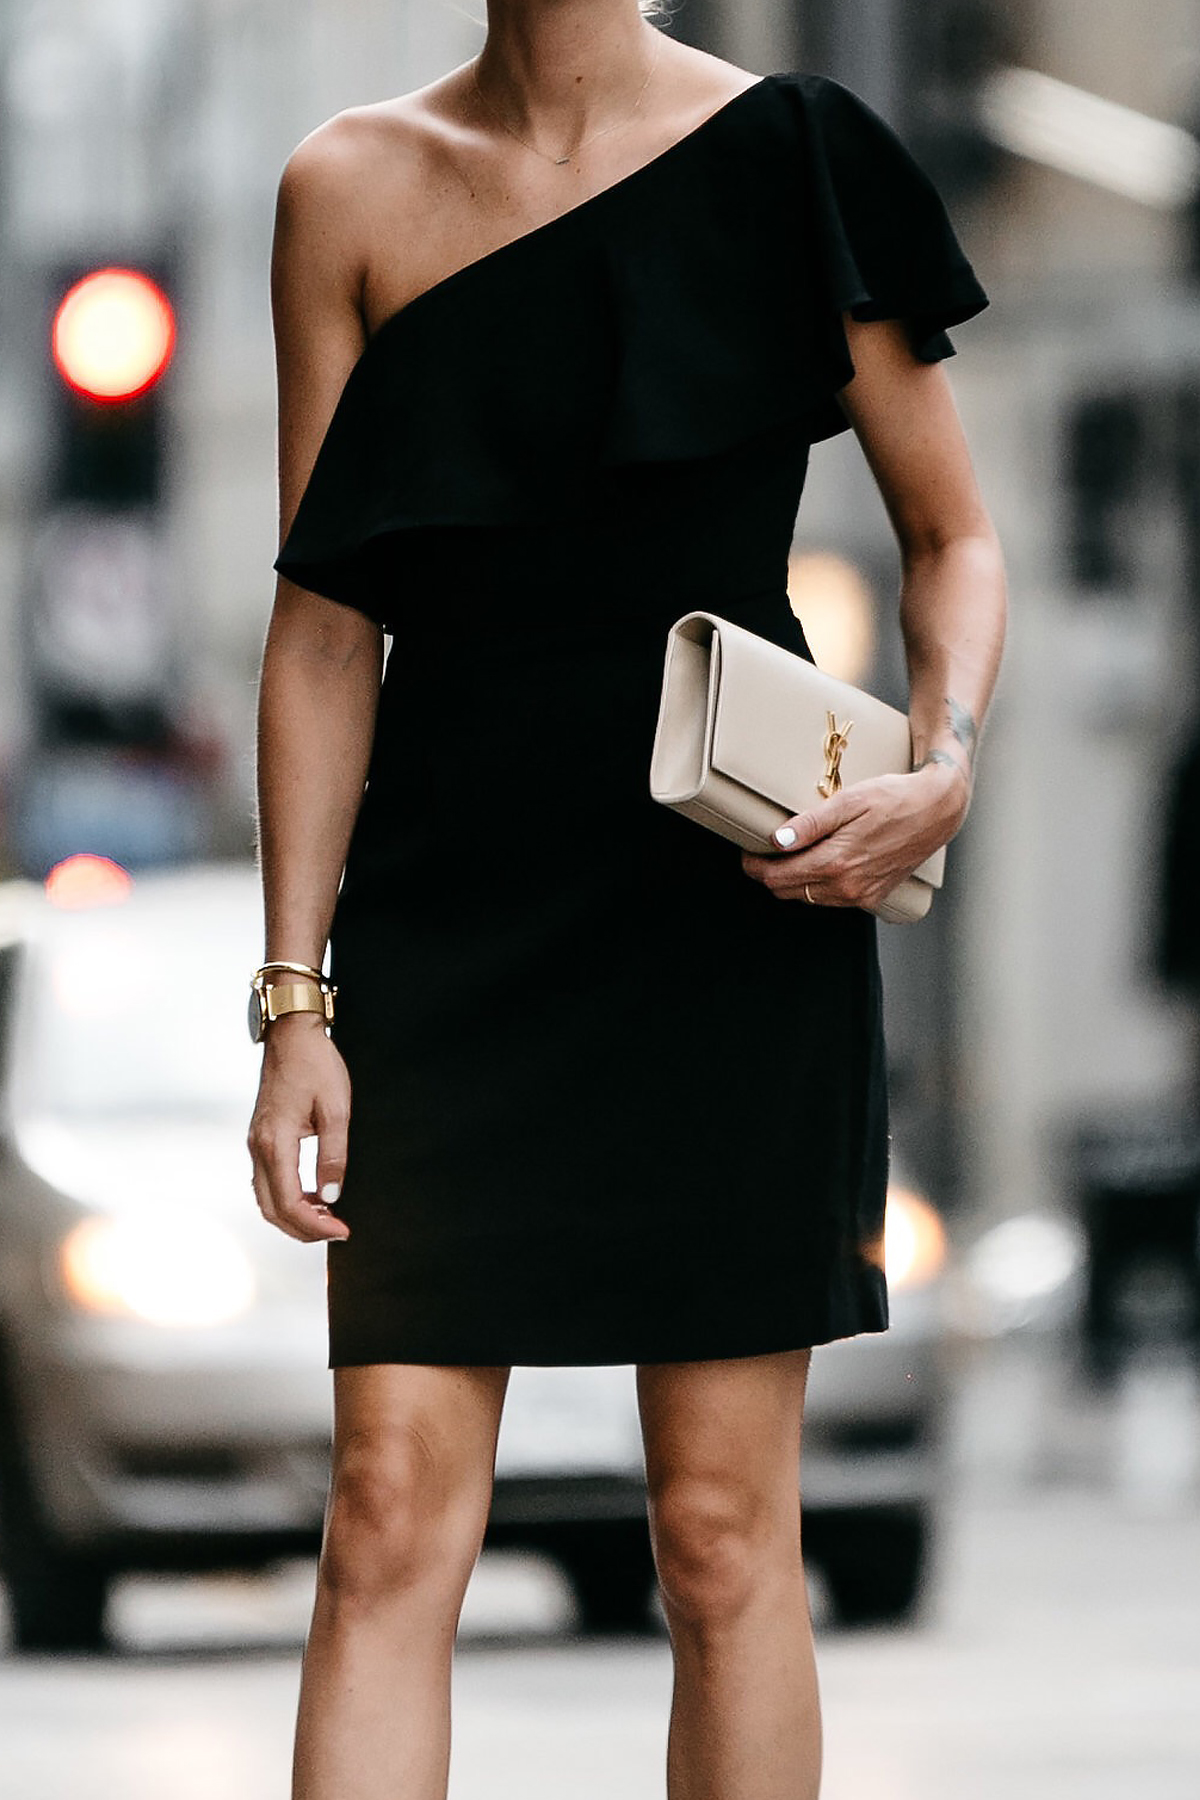 Nordstrom Black One Shoulder Ruffle Dress Saint Laurent Monogram Clutch Fashion Jackson Dallas Blogger Fashion Blogger Street Style